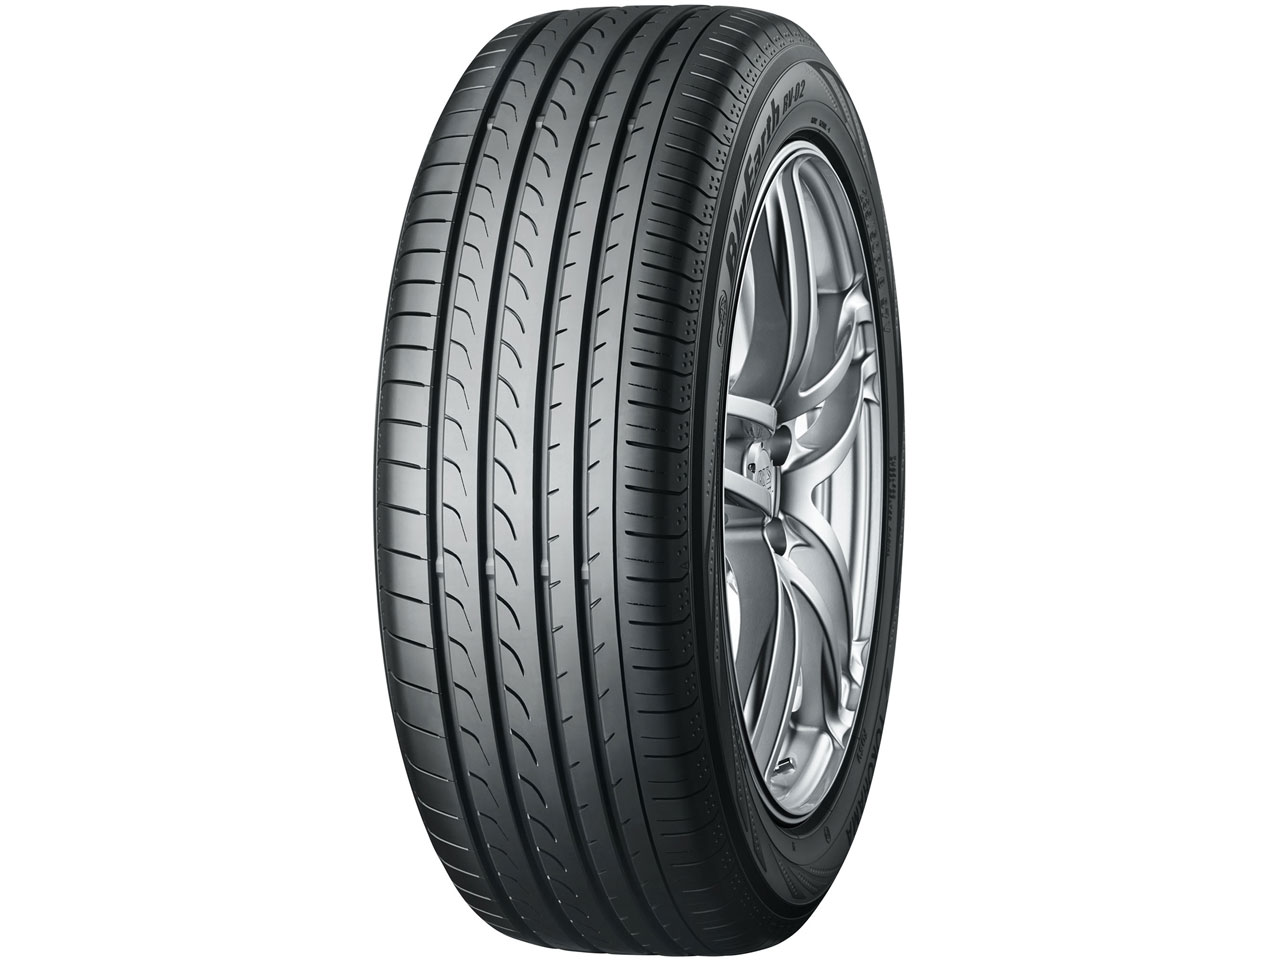 BluEarth RV-02 195/65R15 91H �̐��i�摜